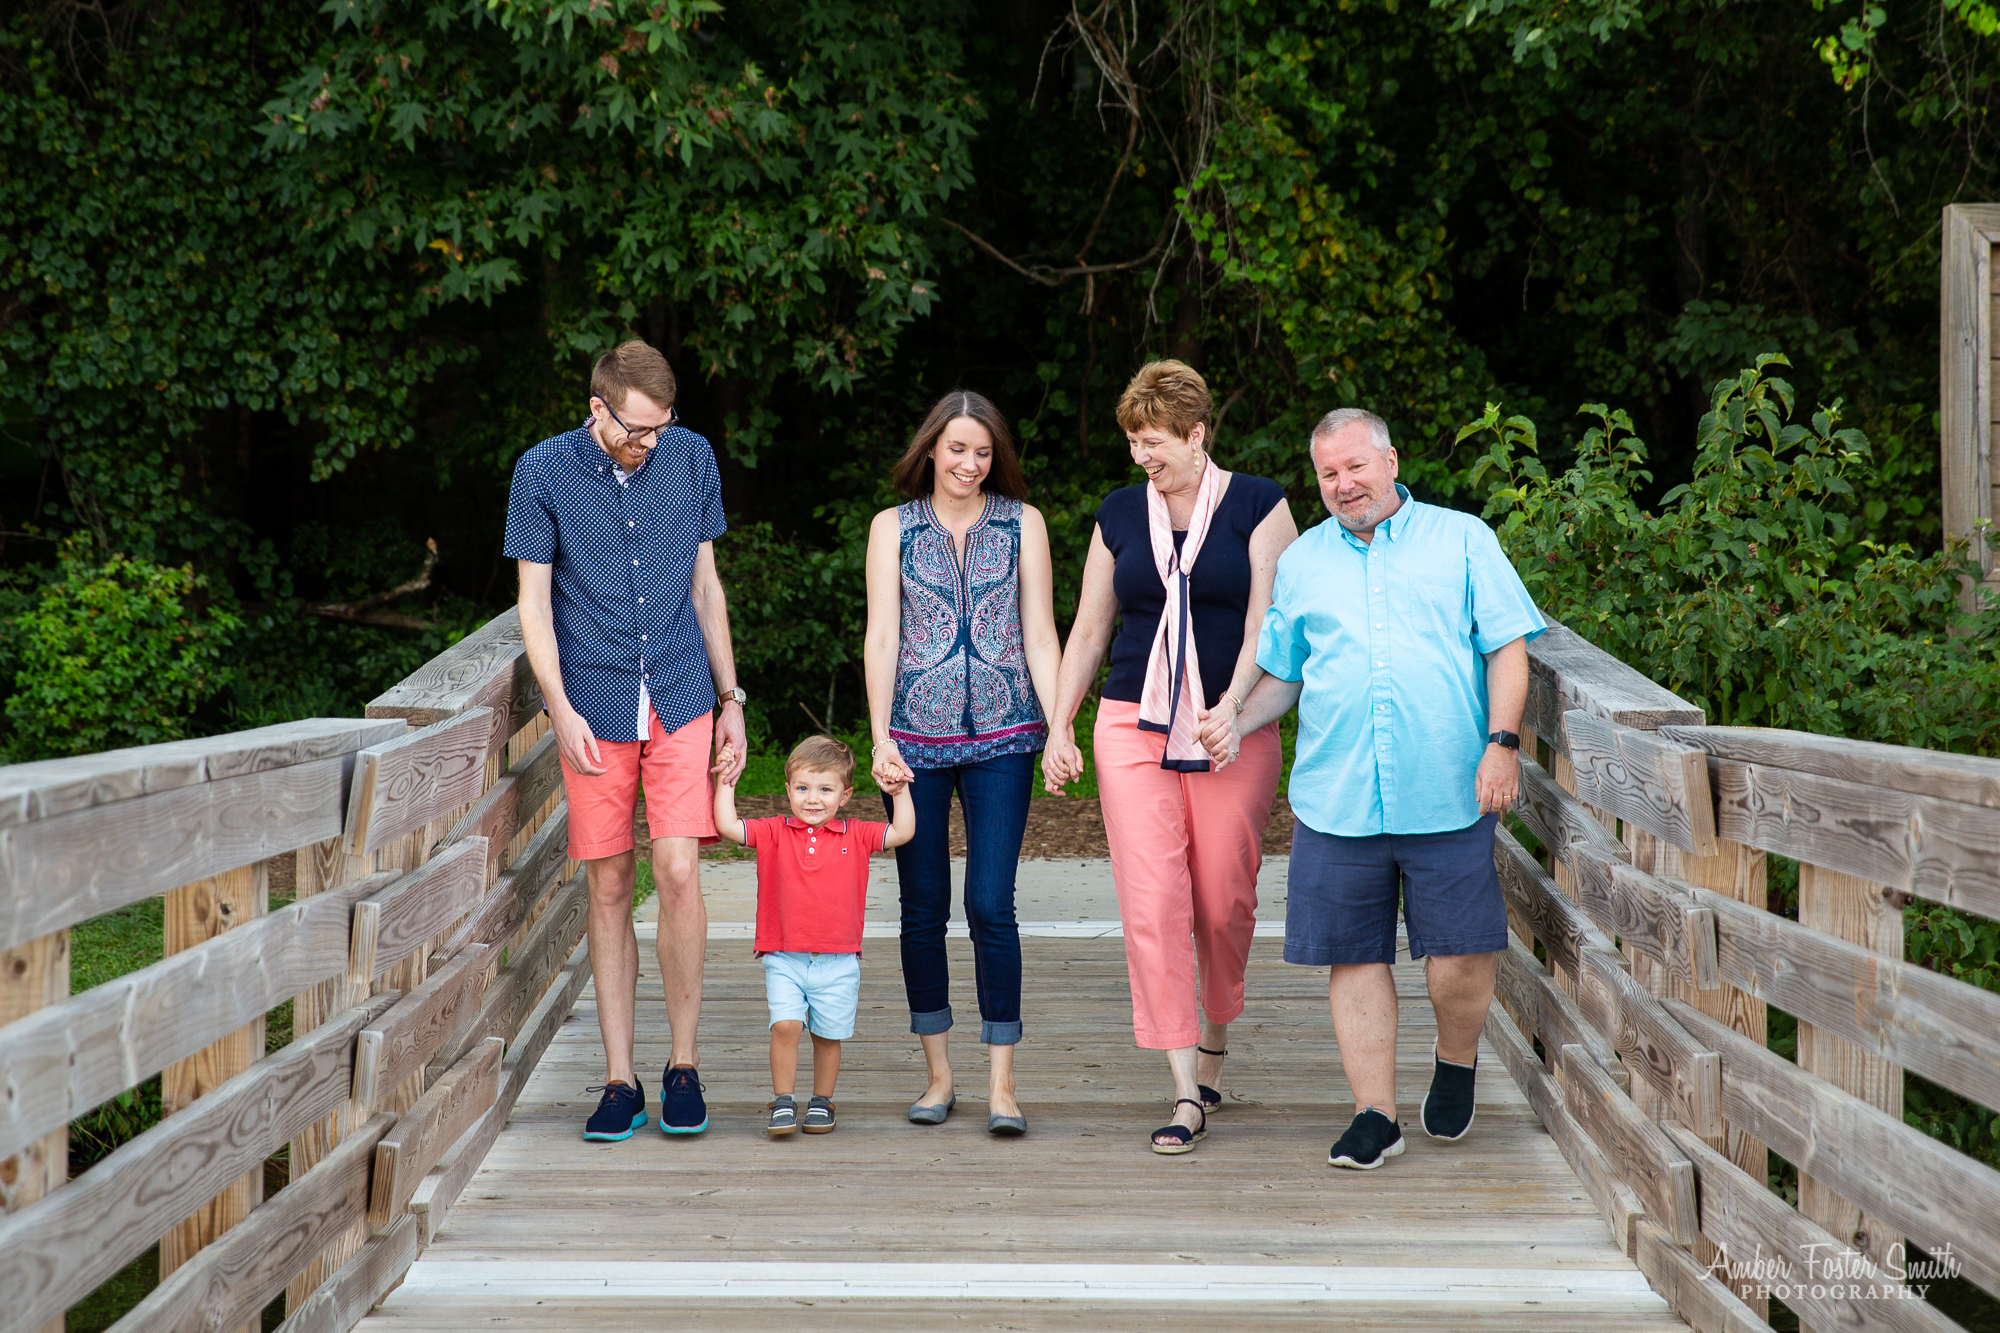 family walking hand in hand on a dock